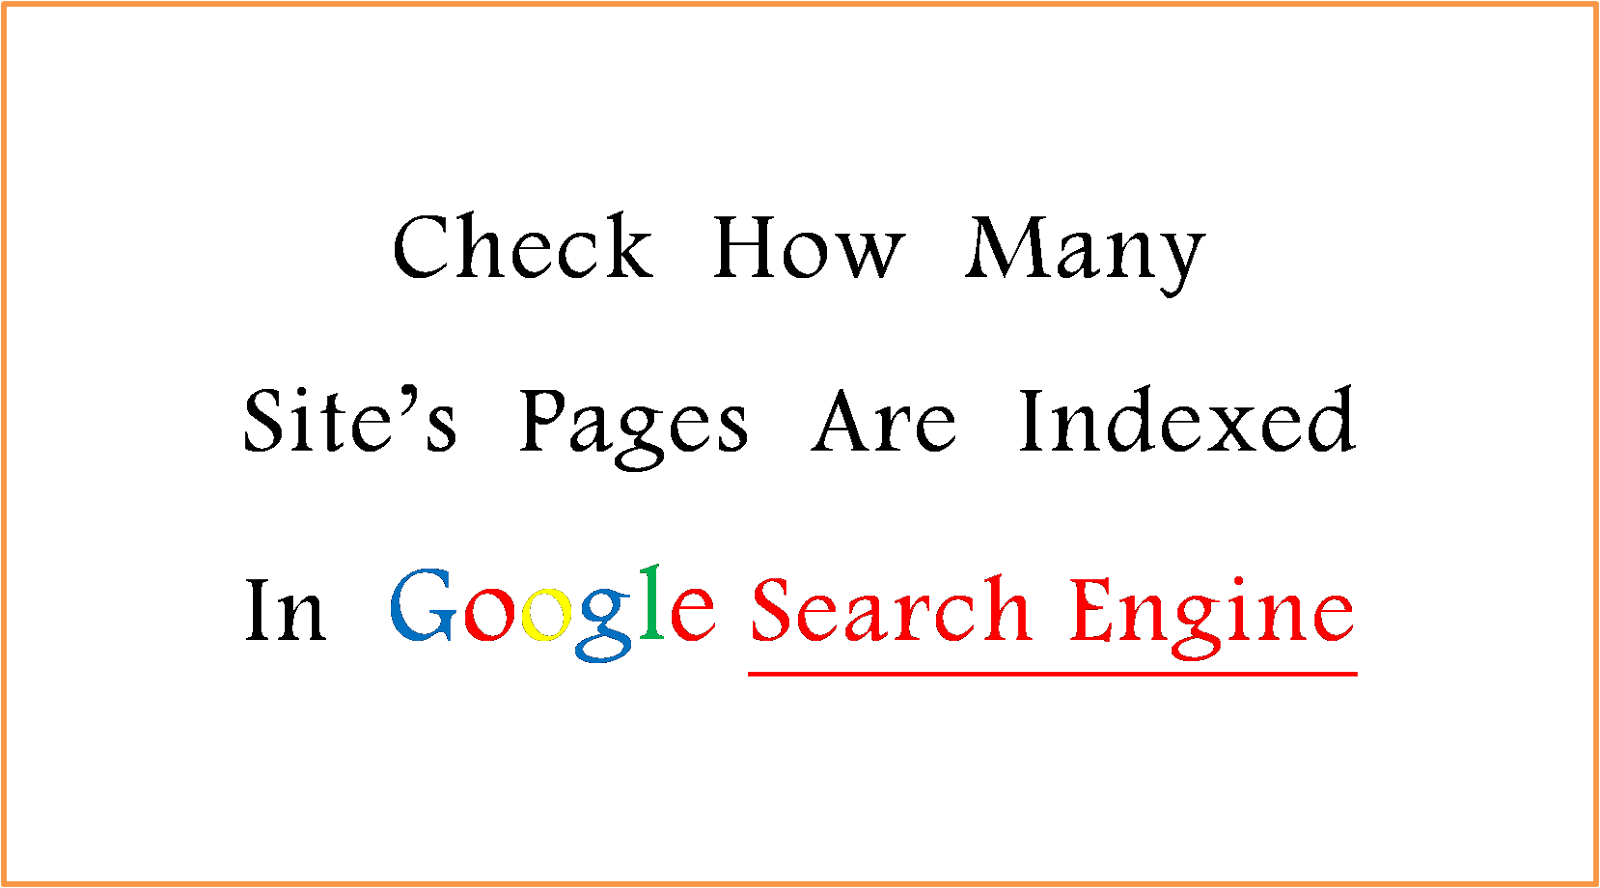 Pages Indexed In Google Search Engine